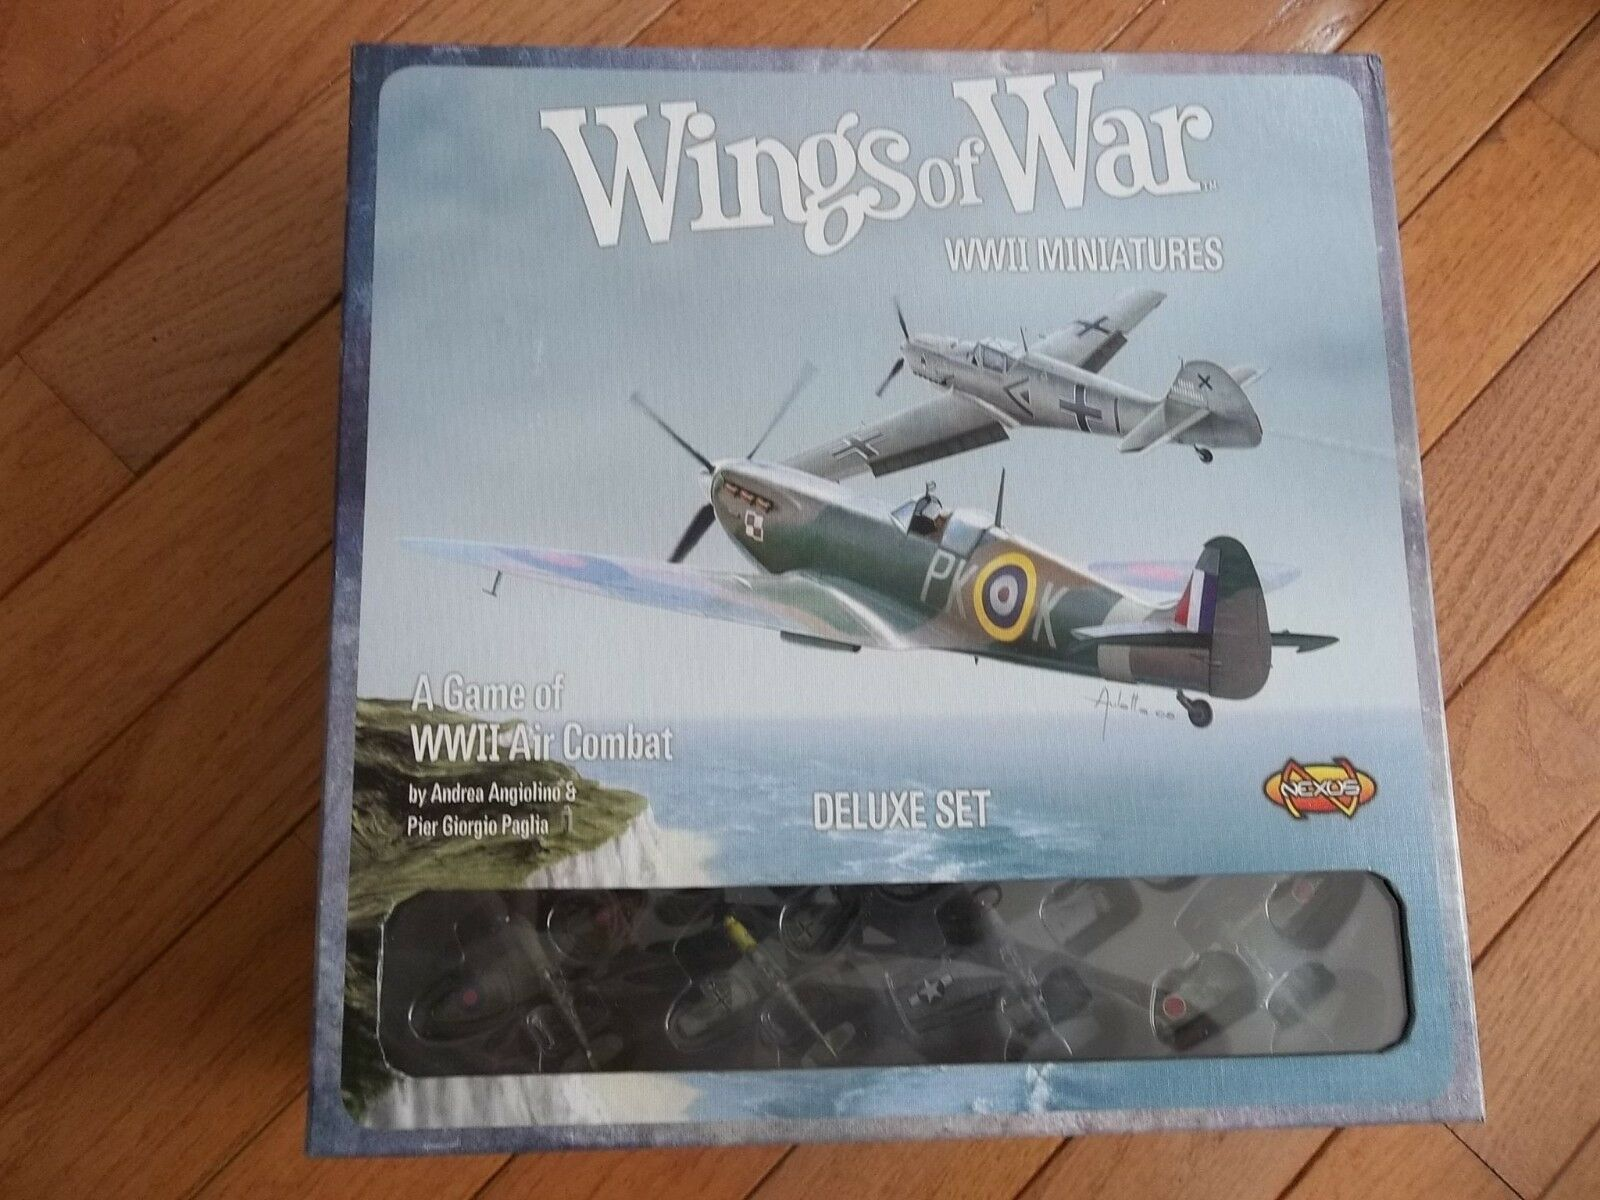 Nexus Wings of of of War WWII Miniatures Deluxe Set unpunched e74150